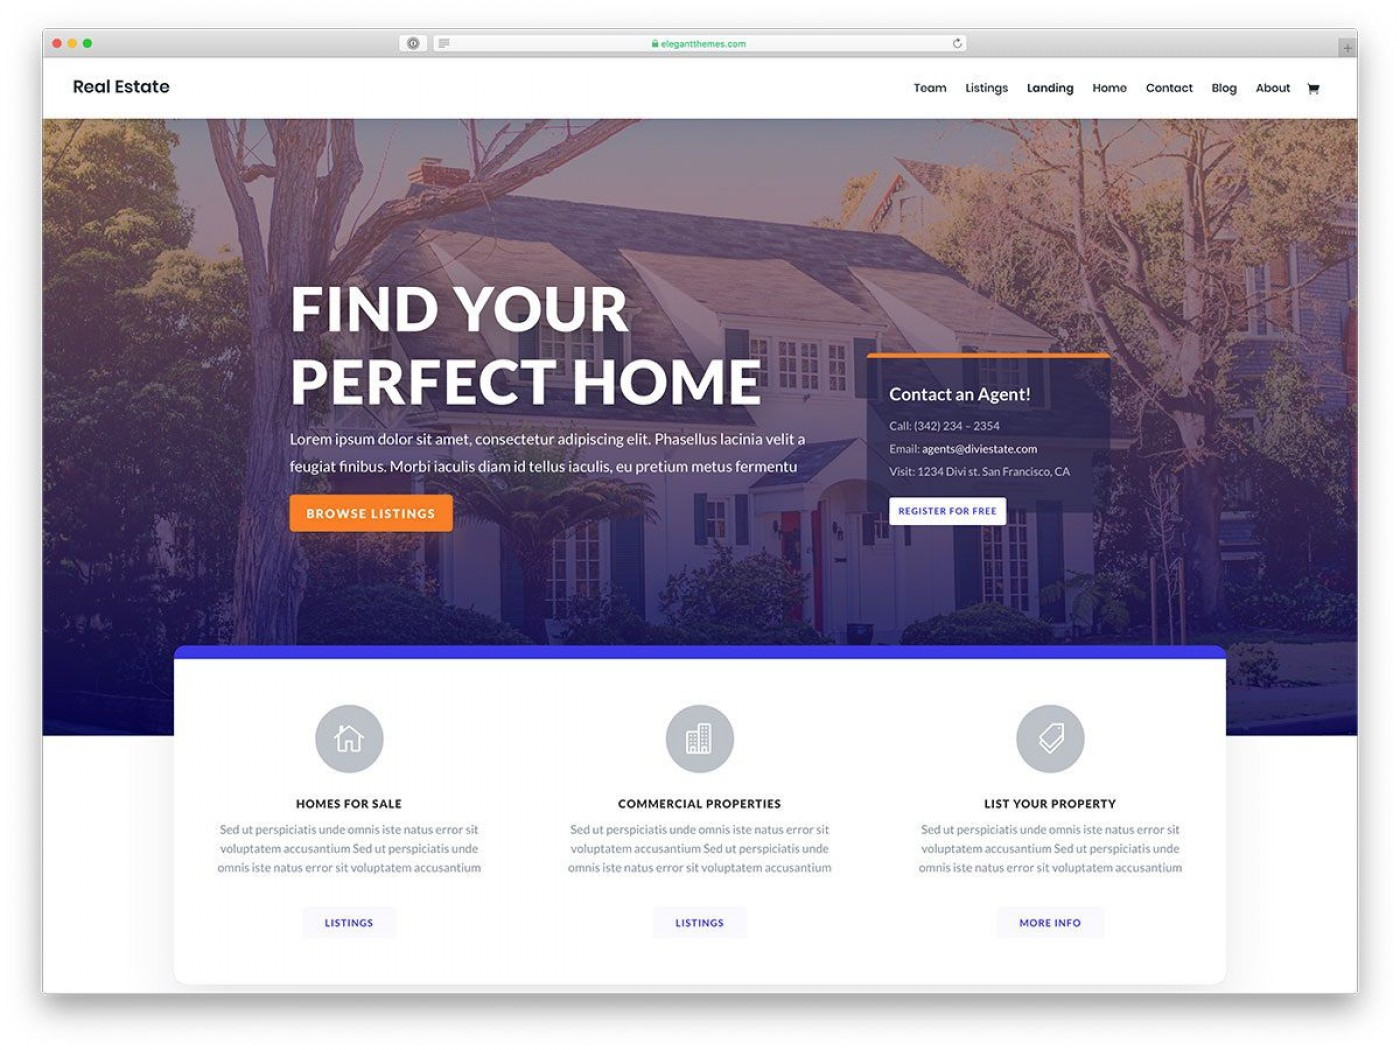 005 Formidable Real Estate Template Wordpres Idea  Homepres - Theme Free Download Realtyspace1400